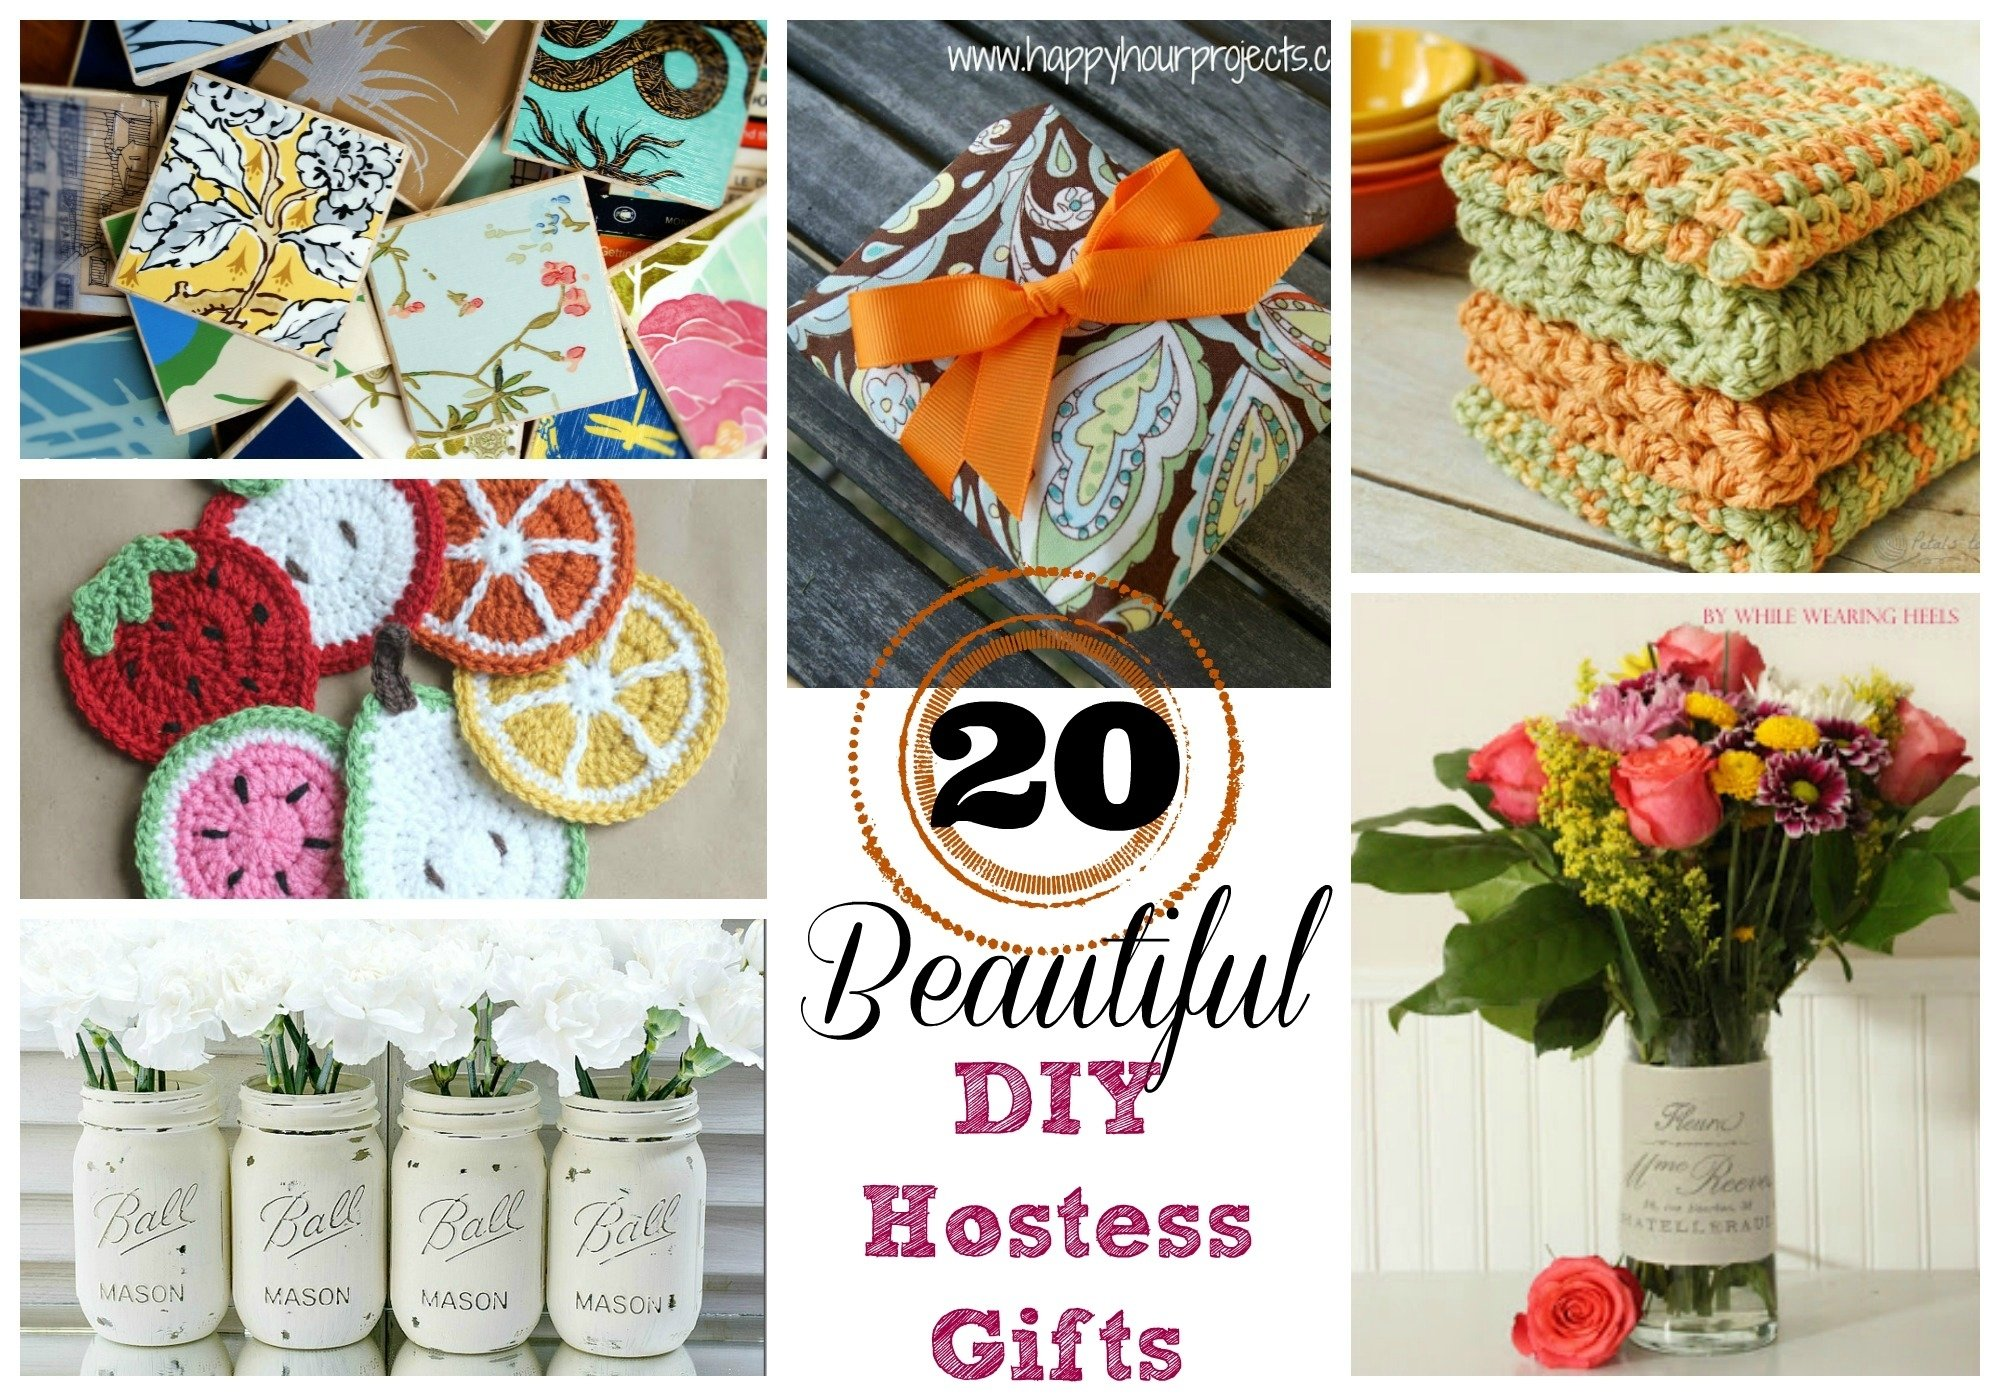 10 Pretty Hostess Gift Ideas For Bridal Shower 20 beautiful diy hostess gifts suburble 2020